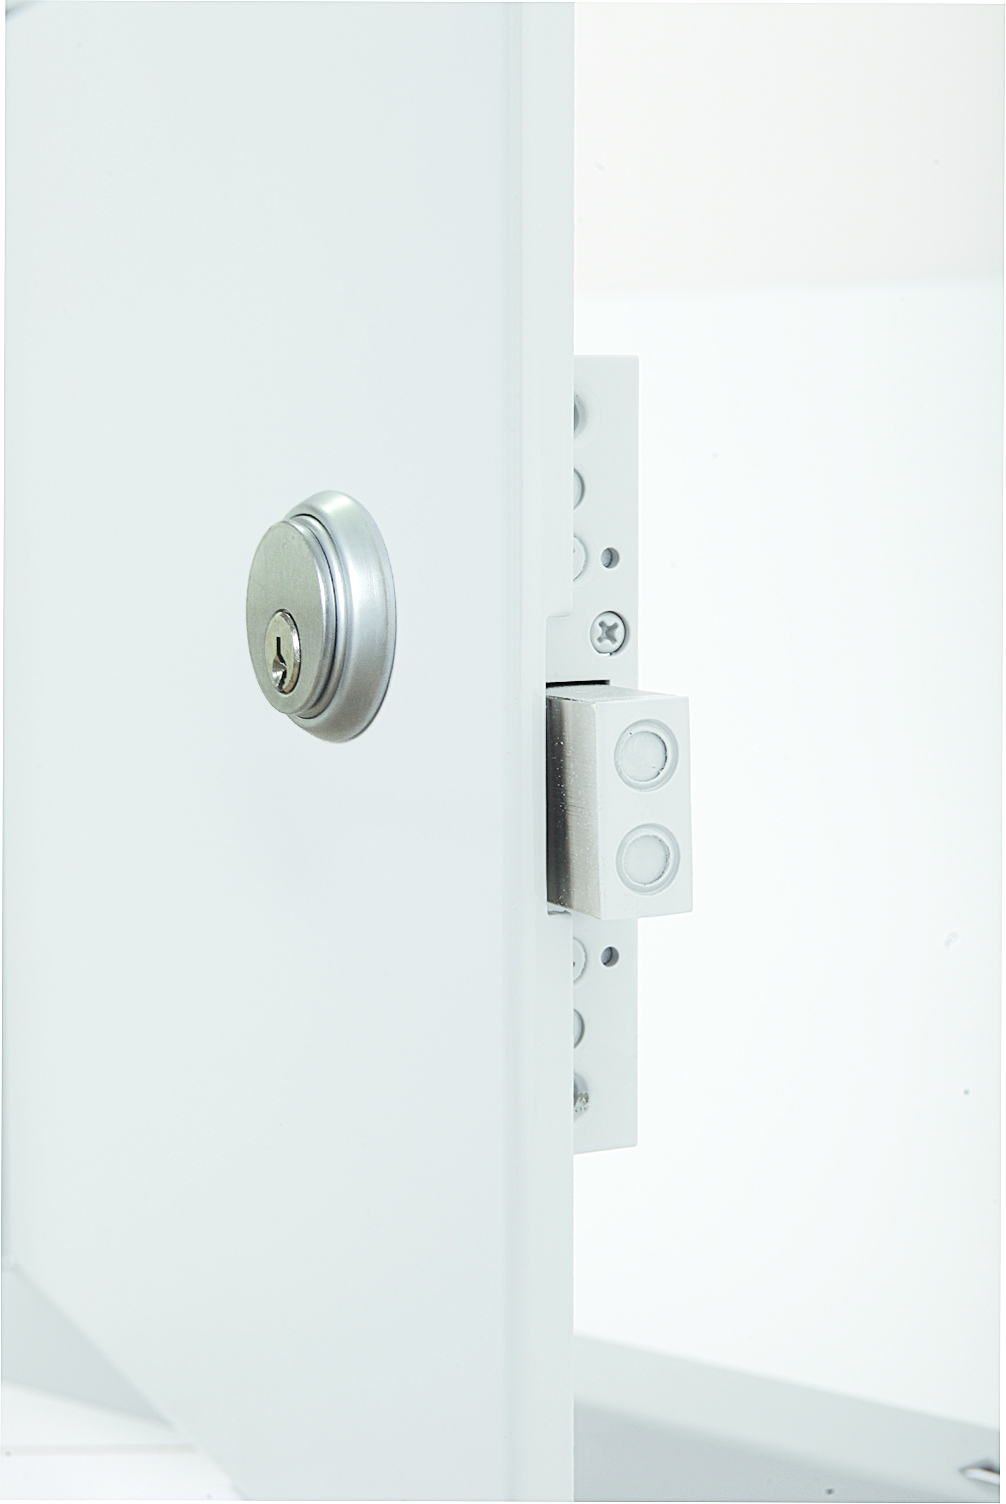 High Security Flush Universel Access Door with Exposed Flange, mortise deadbolt lock with cylinder, heavy duty butt hinge